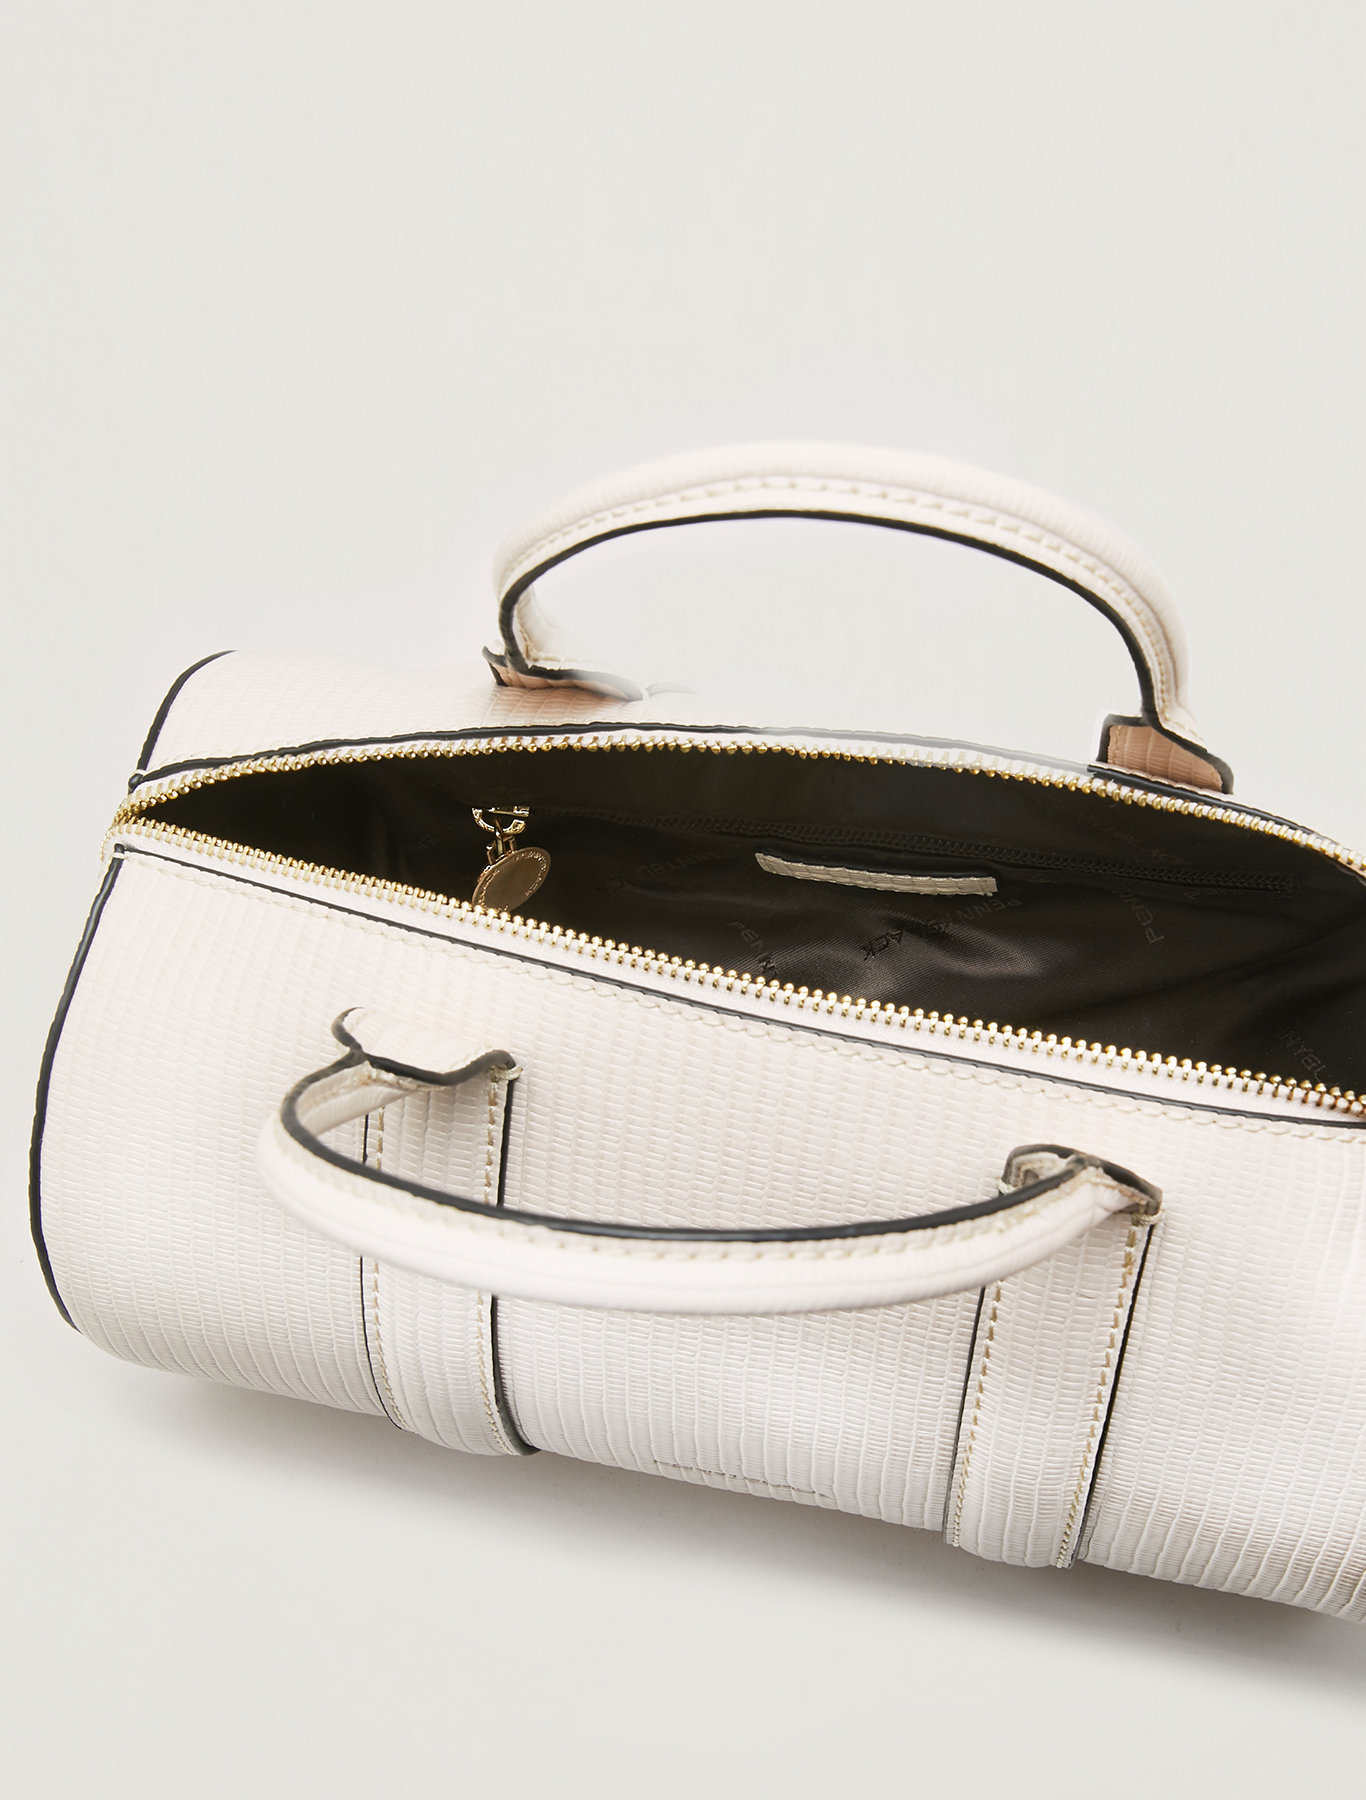 Barrel bag with lizard print - beige - pennyblack